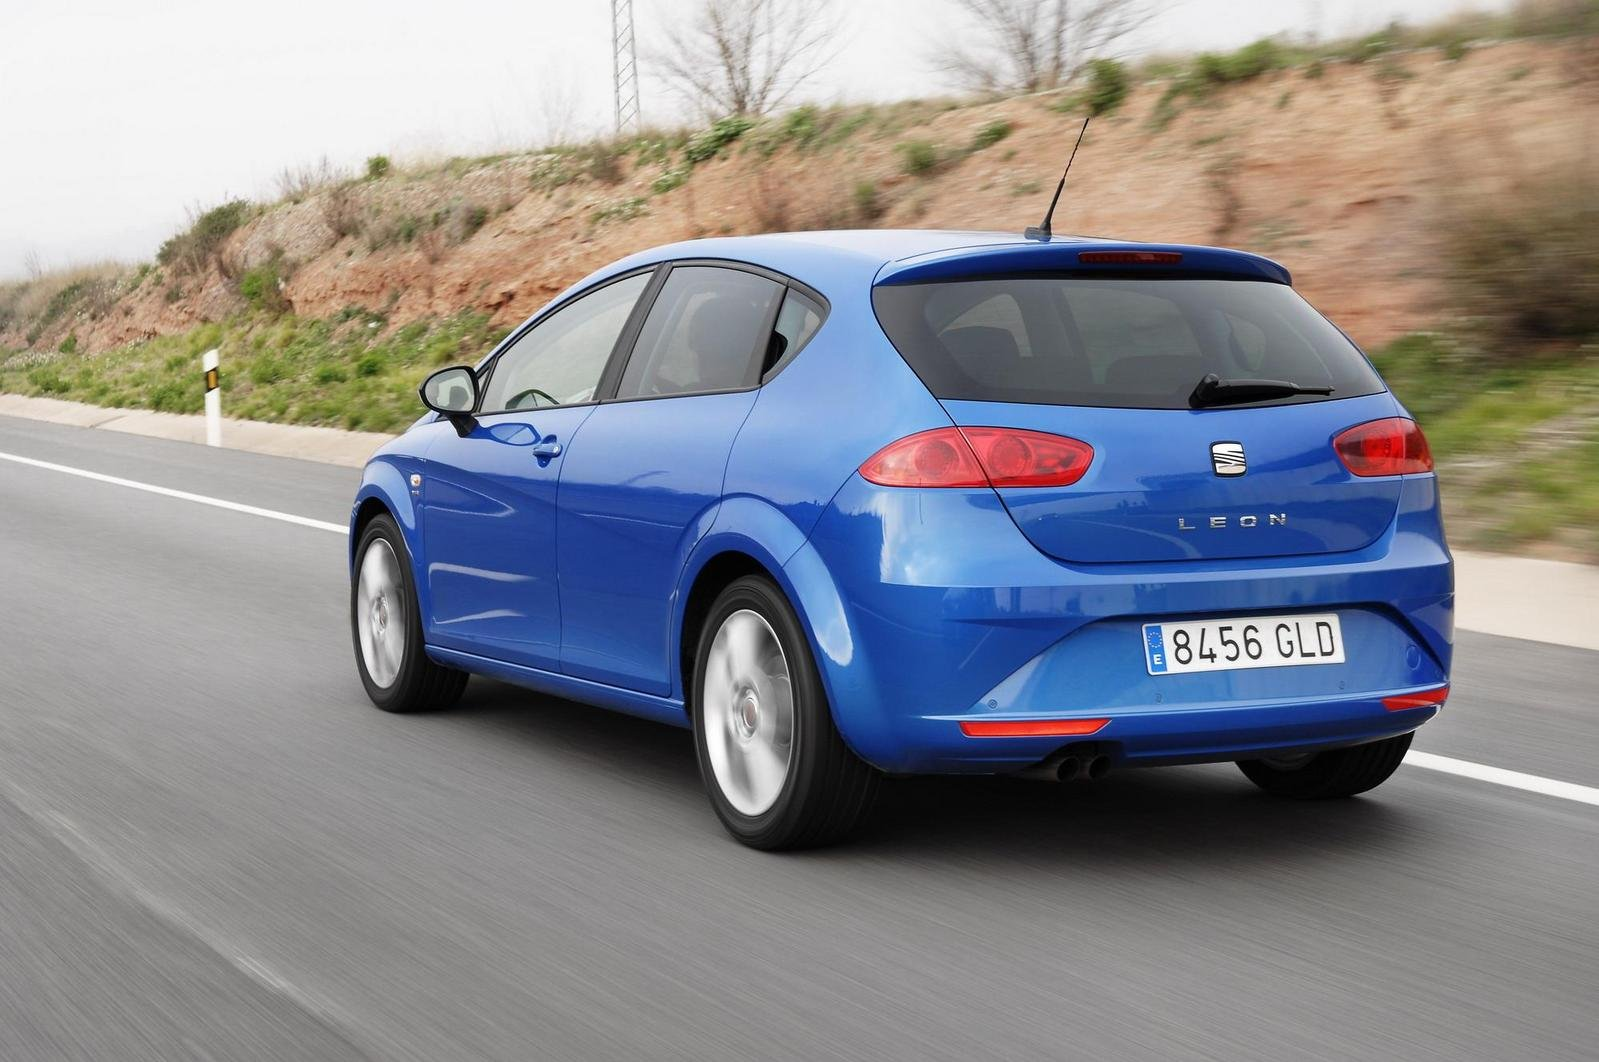 2009 seat leon picture 292766 car review top speed. Black Bedroom Furniture Sets. Home Design Ideas